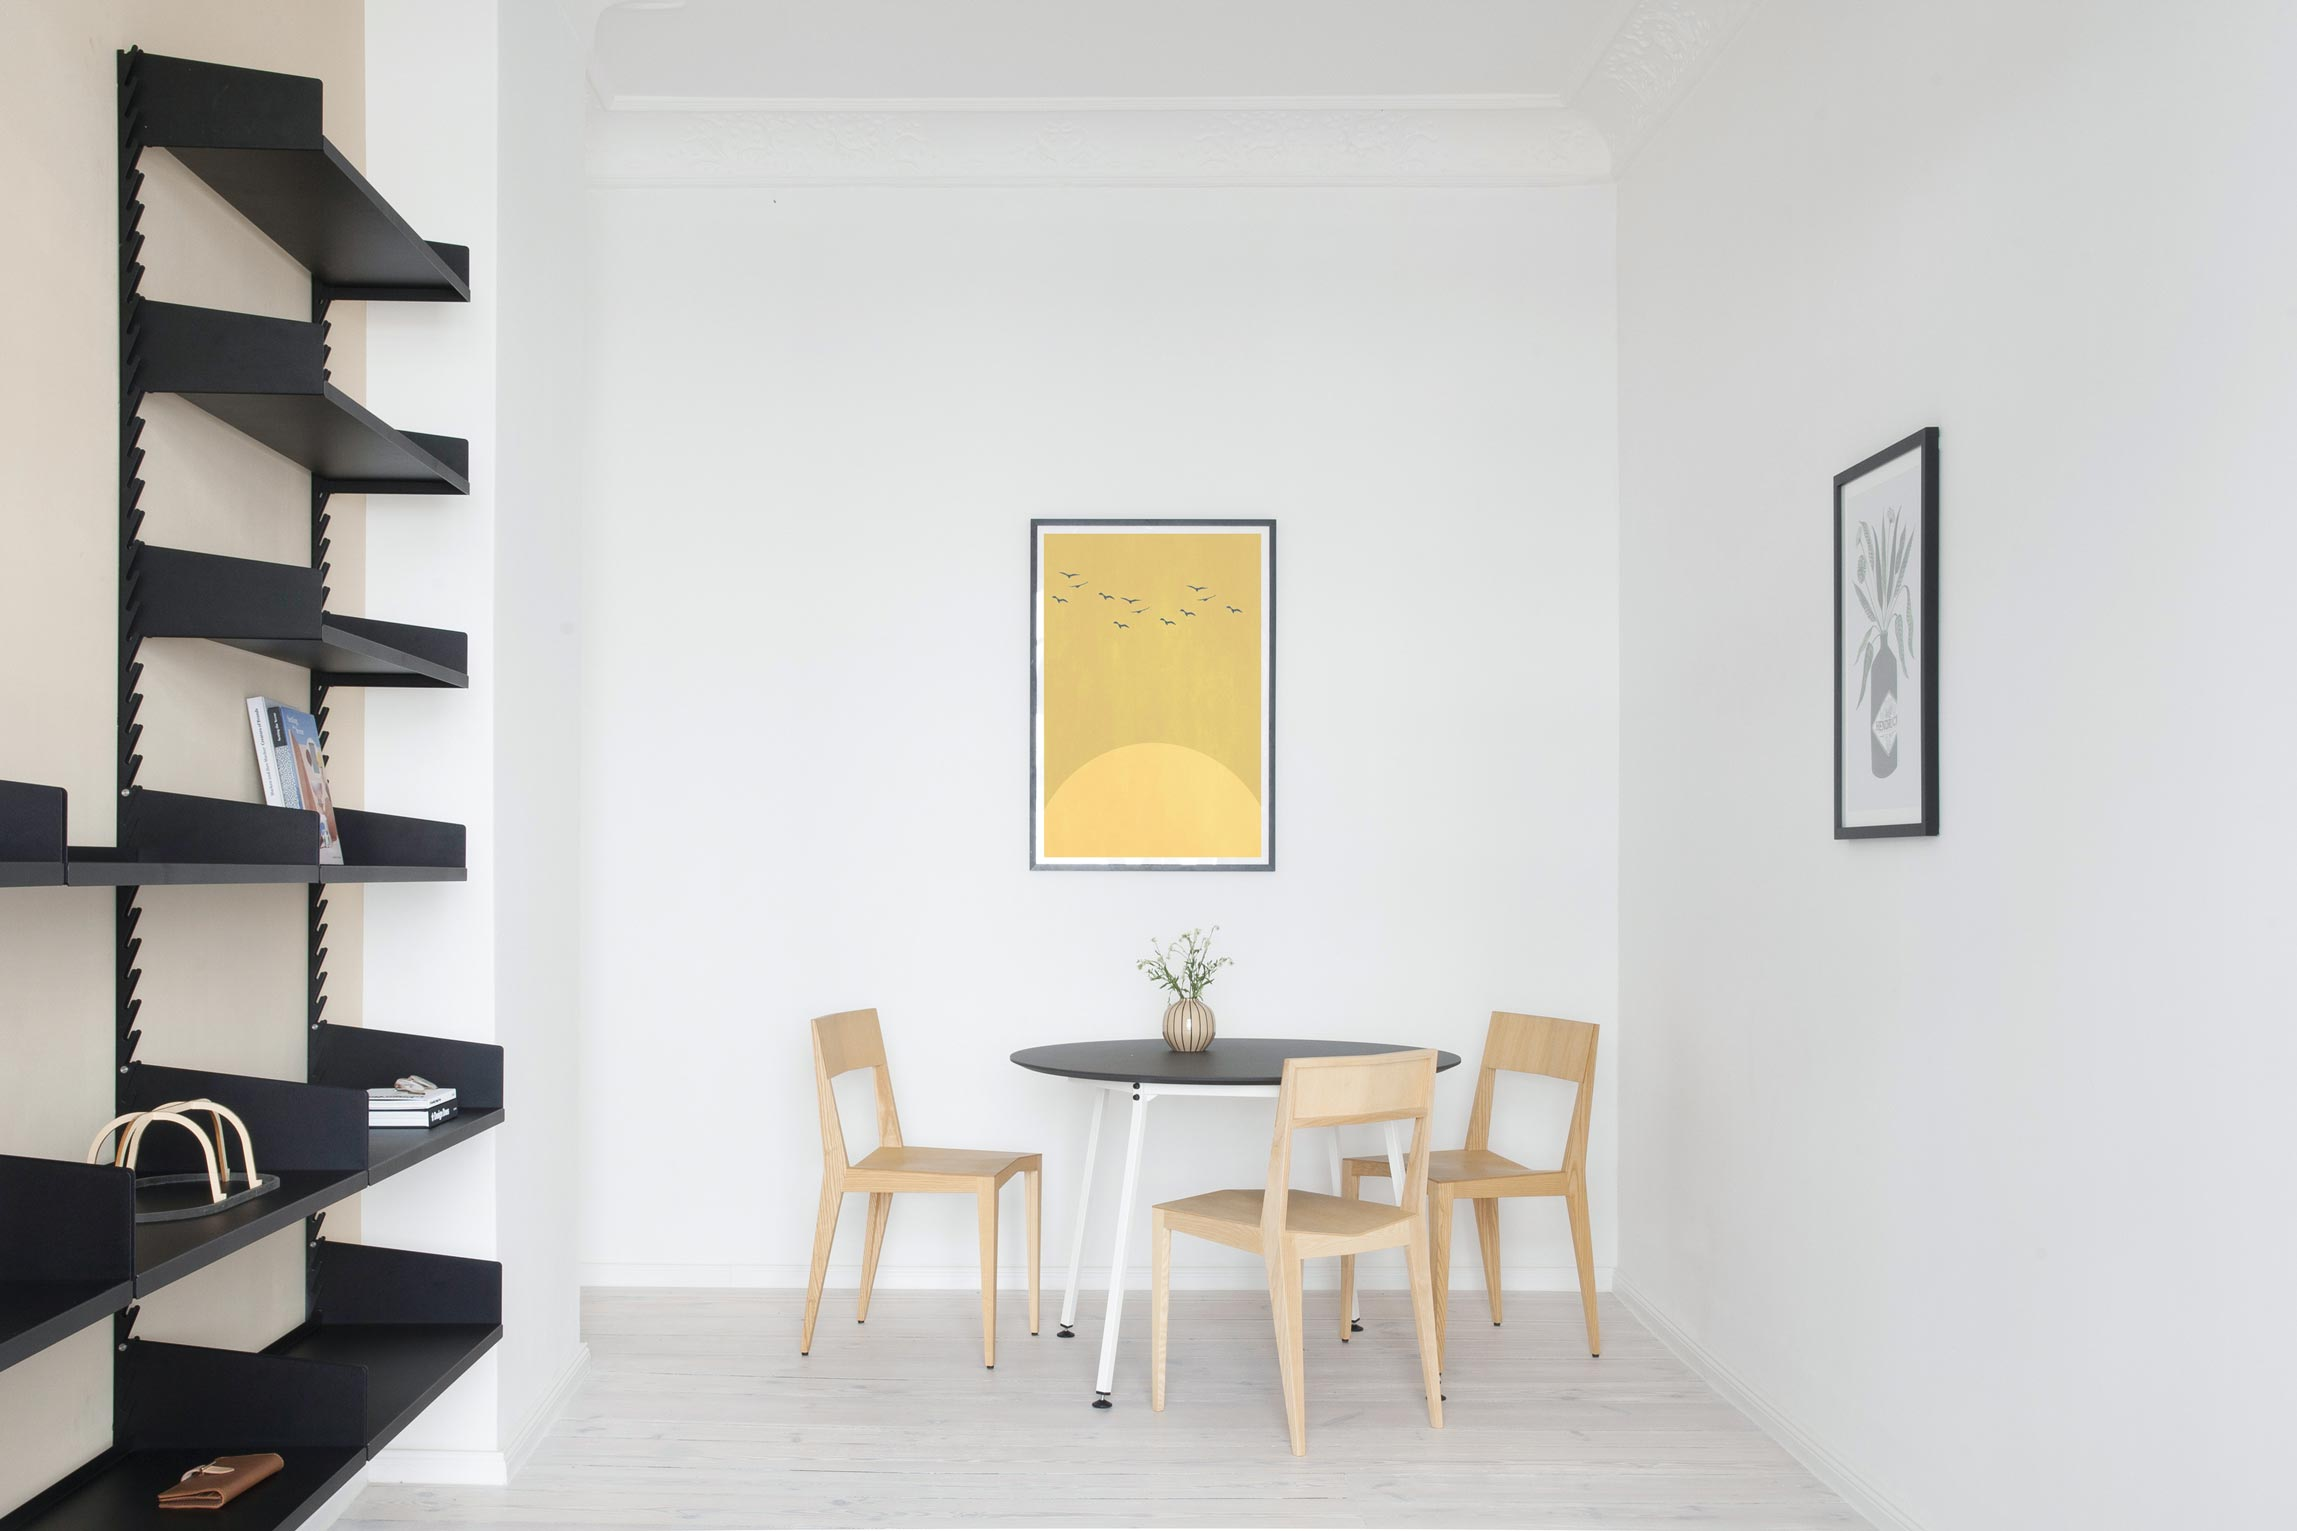 The living rom for Furnished Apartment includes the Even Better Shelf, Easy Round table and Chair 3.